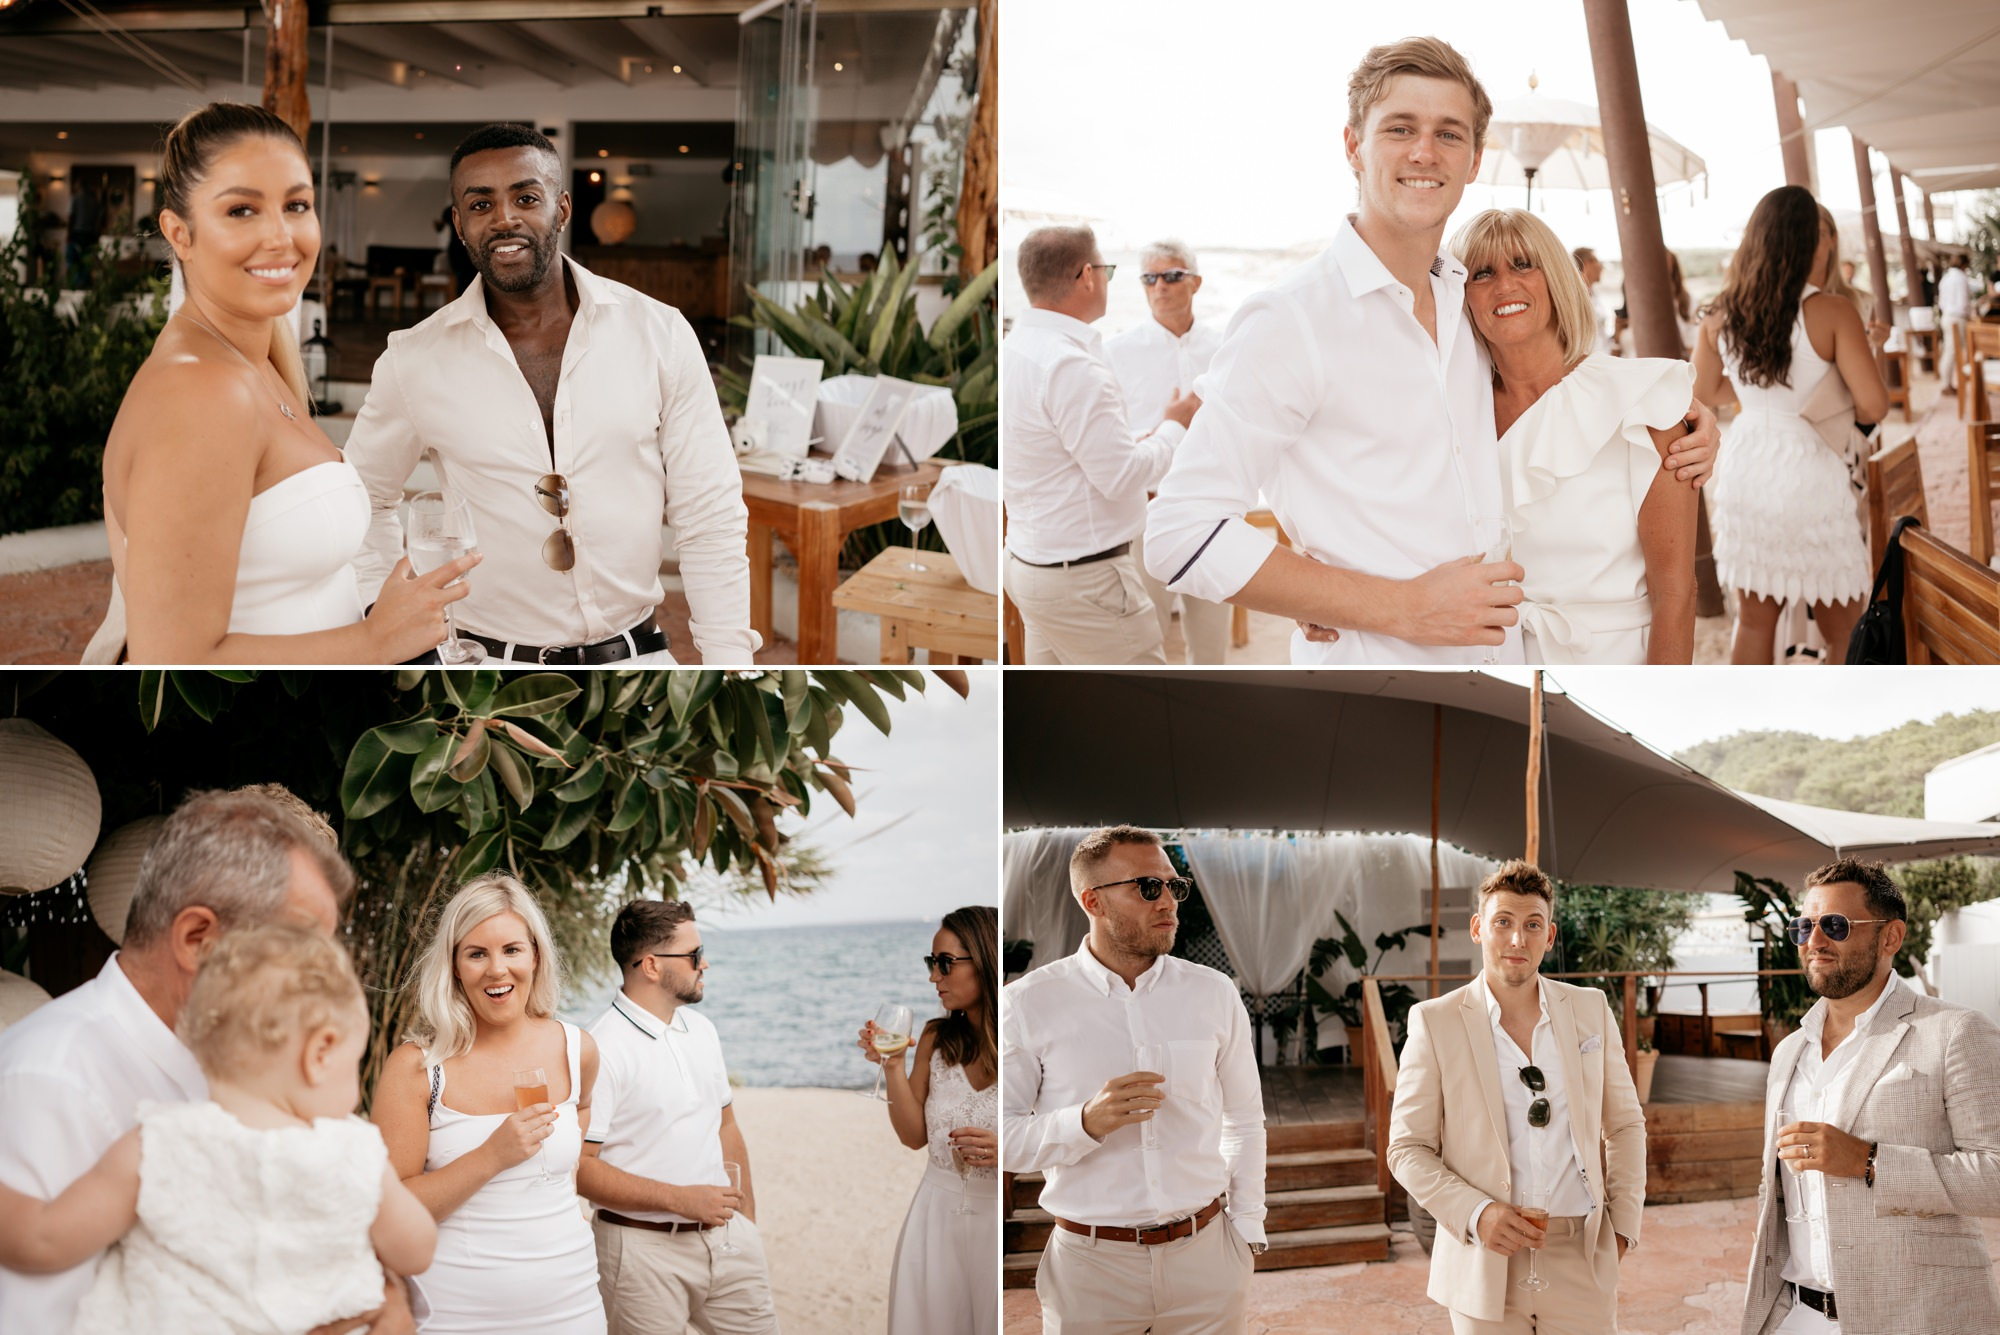 natural wedding photo destination la escollera ibiza 0044 1